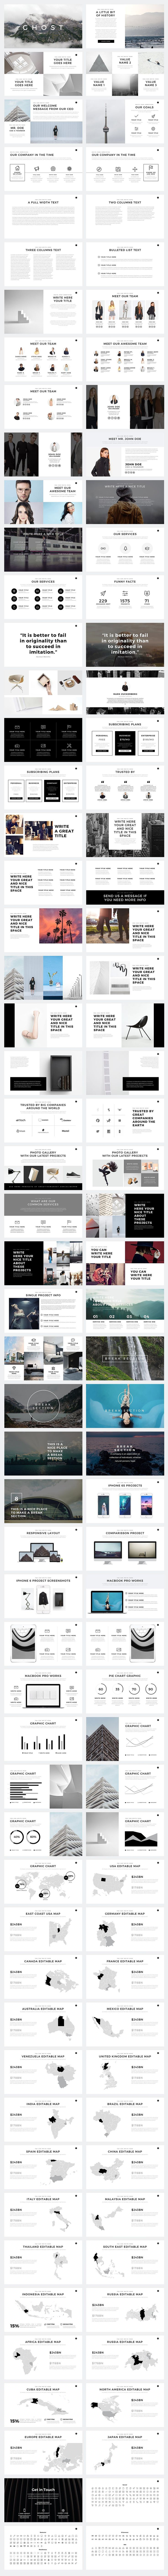 Ghost Minimal Powerpoint Template by SlidePro on @creativemarket #ad